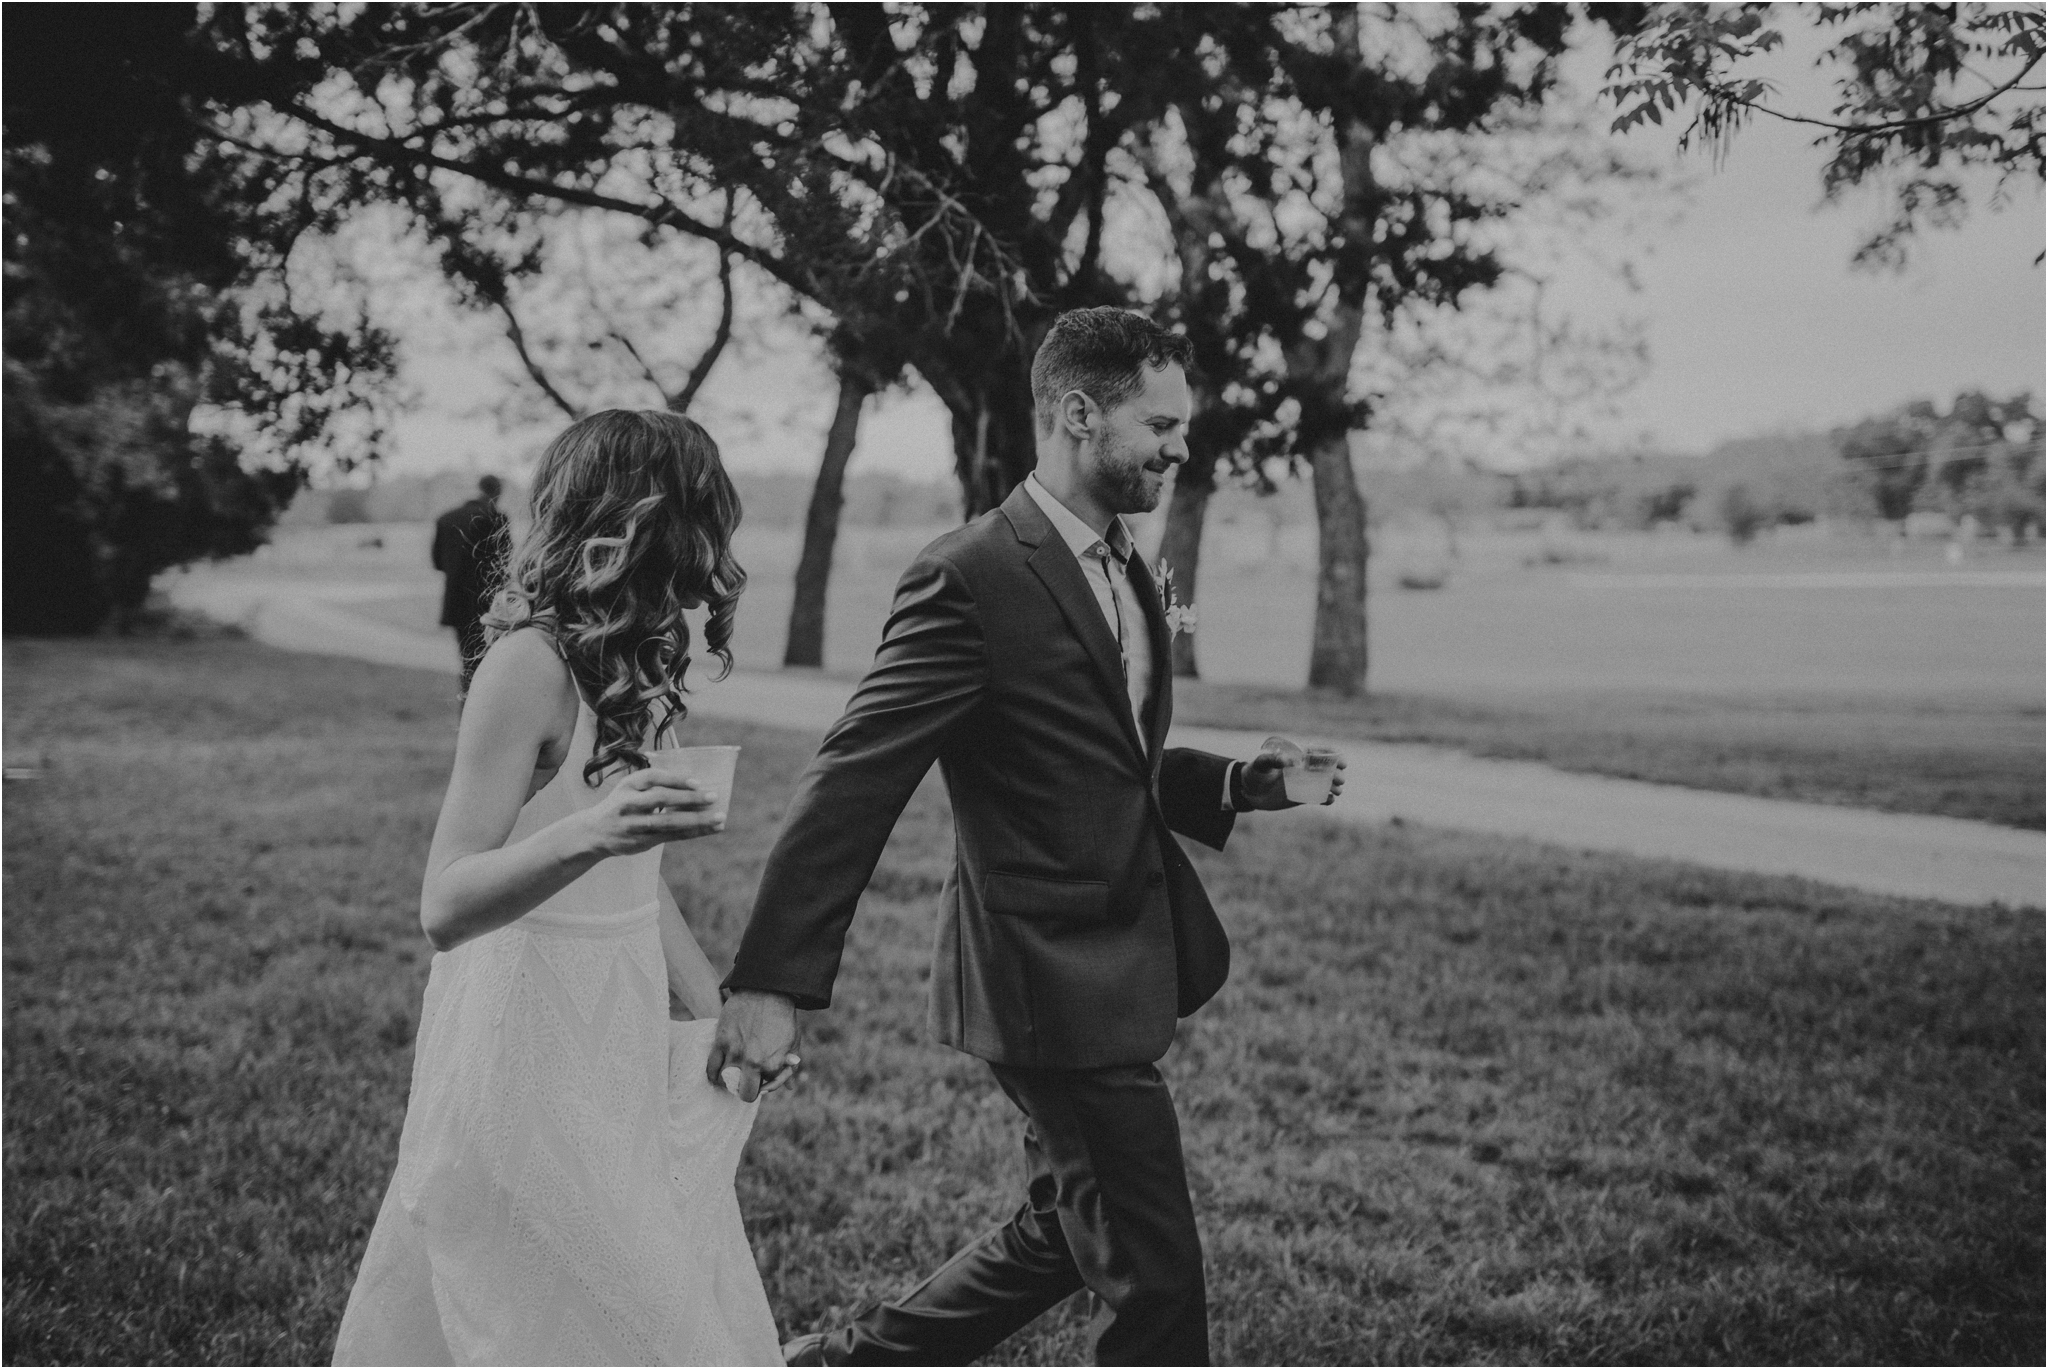 jillian-and-scott-pecan-springs-ranch-texas-and-washington-wedding-photographer-099.jpg